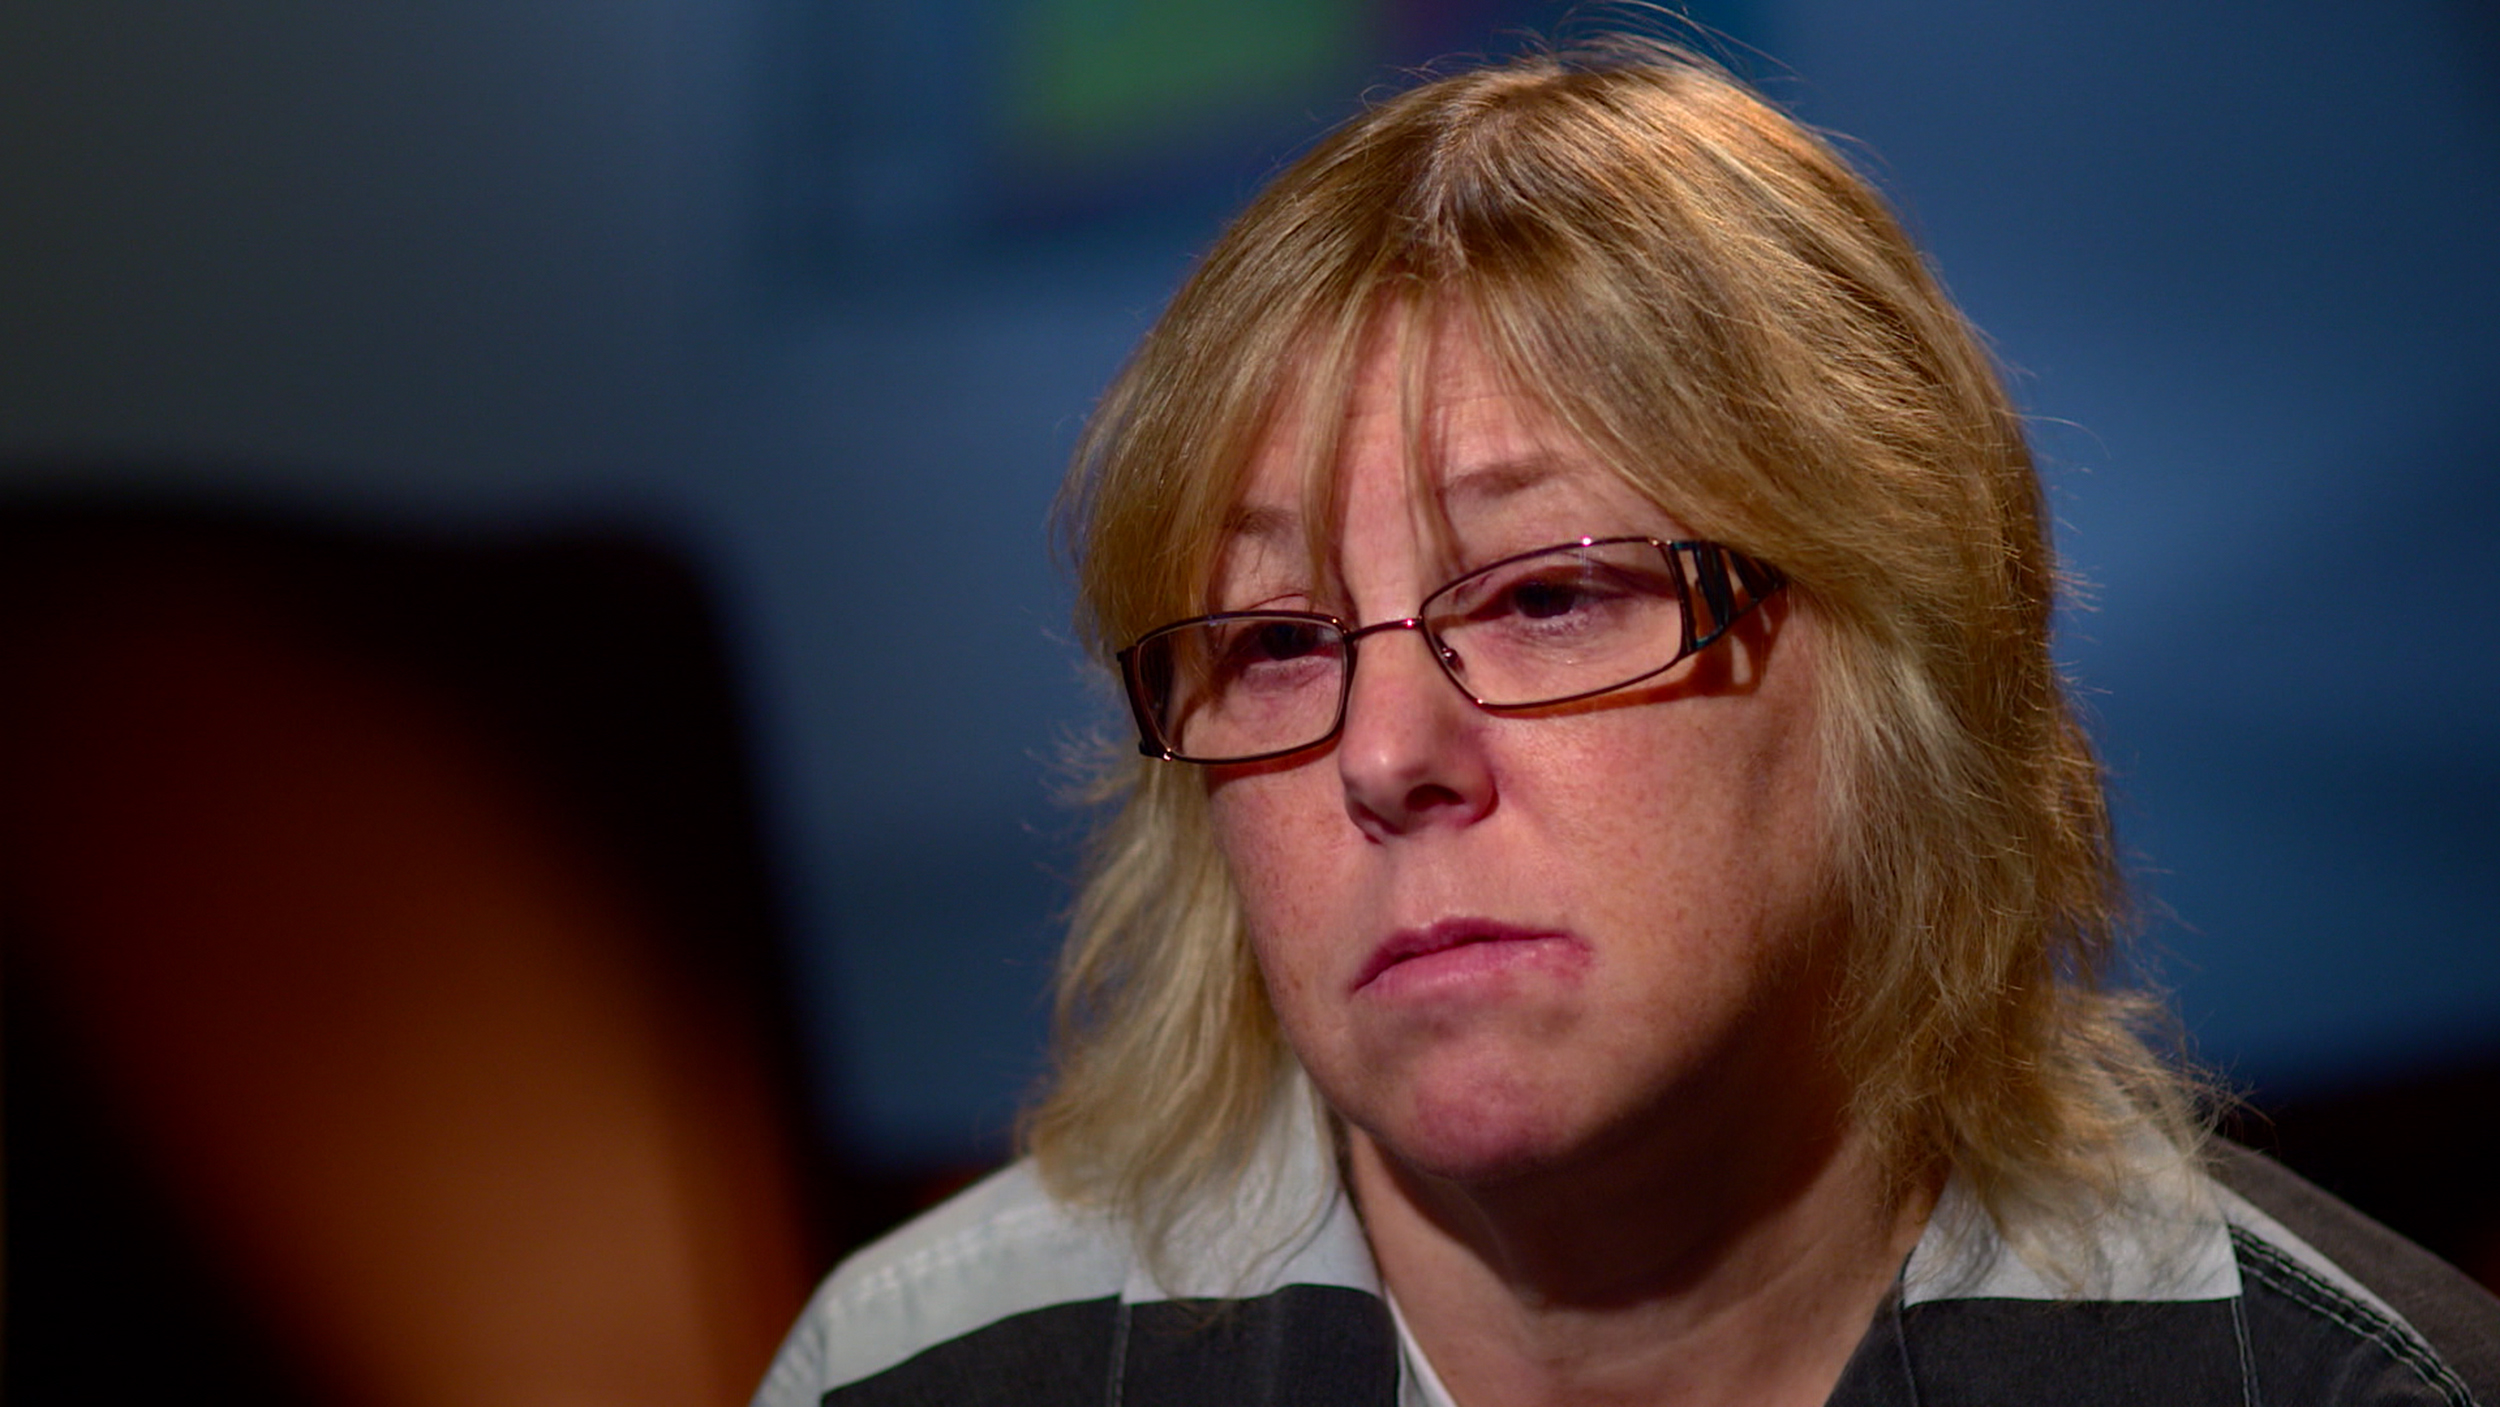 Joyce Mitchell On Role In Prison Escape I Was Only